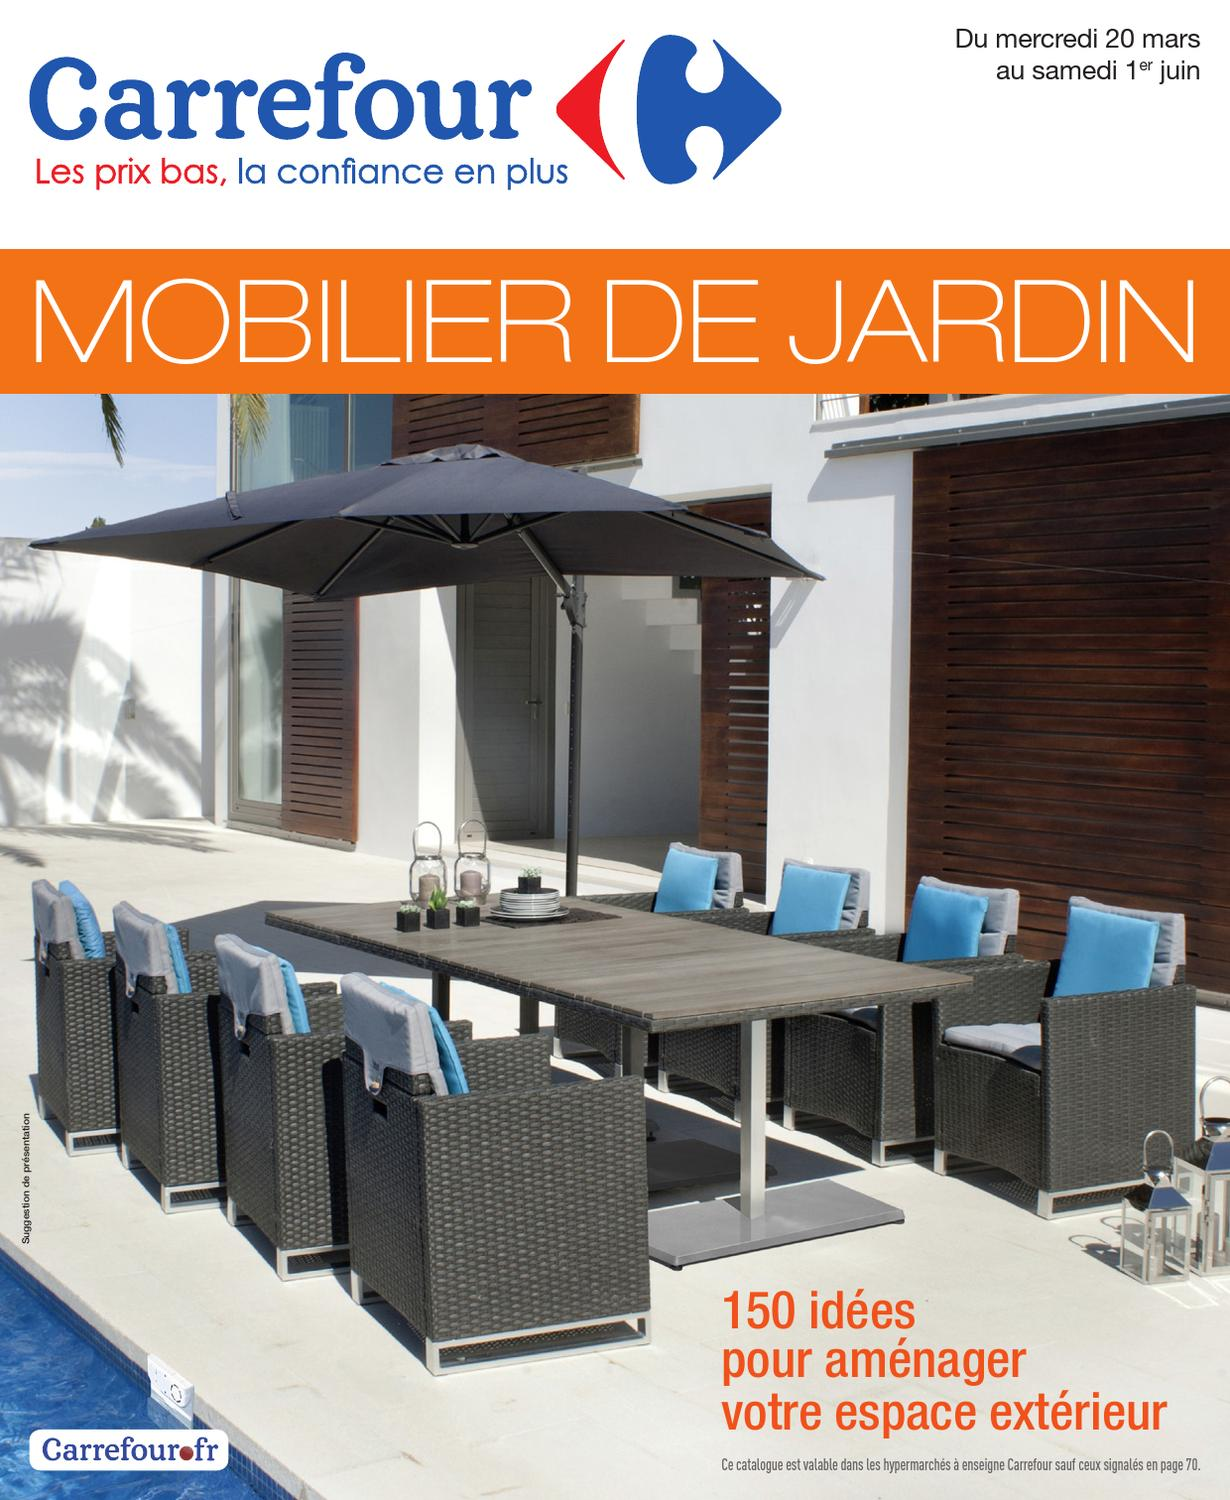 Carrefour 20 3 1 6 2013 by proomo france issuu - Carrefour maison de jardin ...